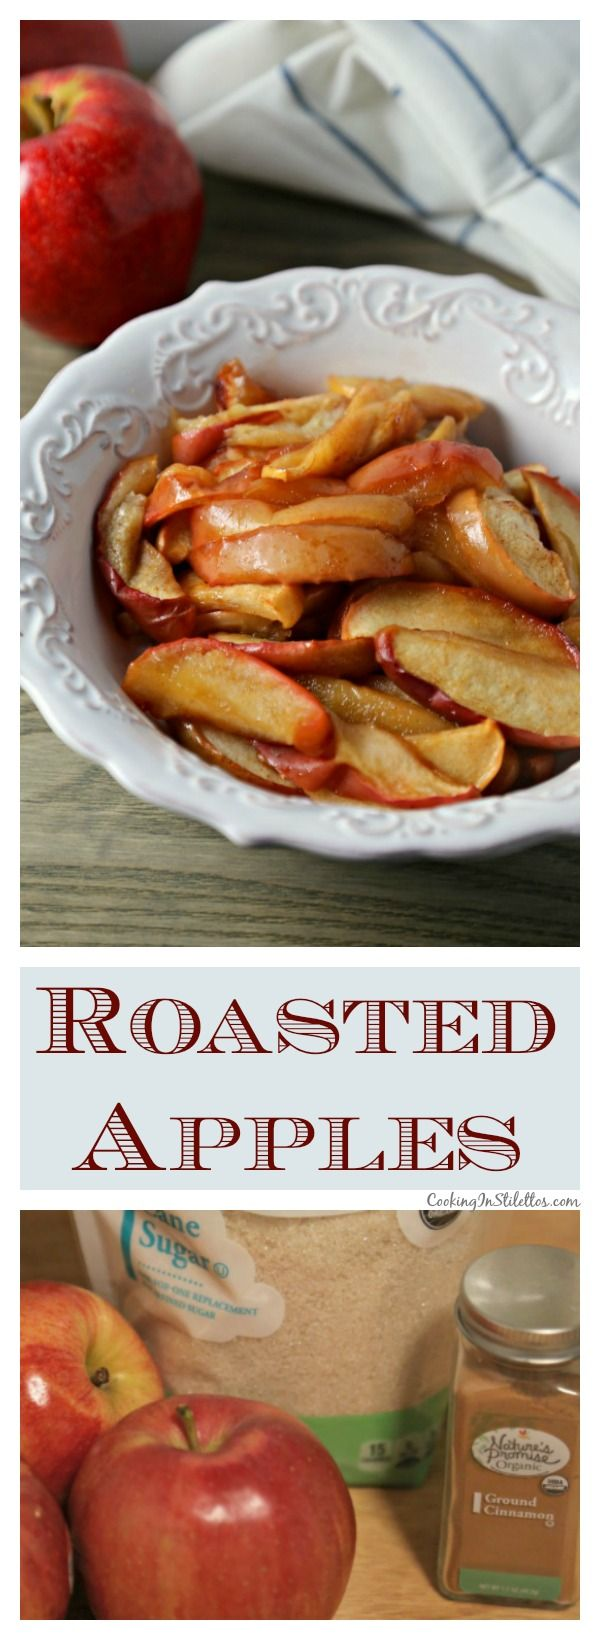 Roasted Apples from CookingInStilettos.com are the perfect accompaniment to your favorite pork or ham recipe - sweetly spiced with a hint of lemon, these Roasted Apples will be a hit!  Roasted Apples | Easy Side Dish | Fall Recipe | Side Dishes | Apple Recipe for Pork | @CookInStilettos